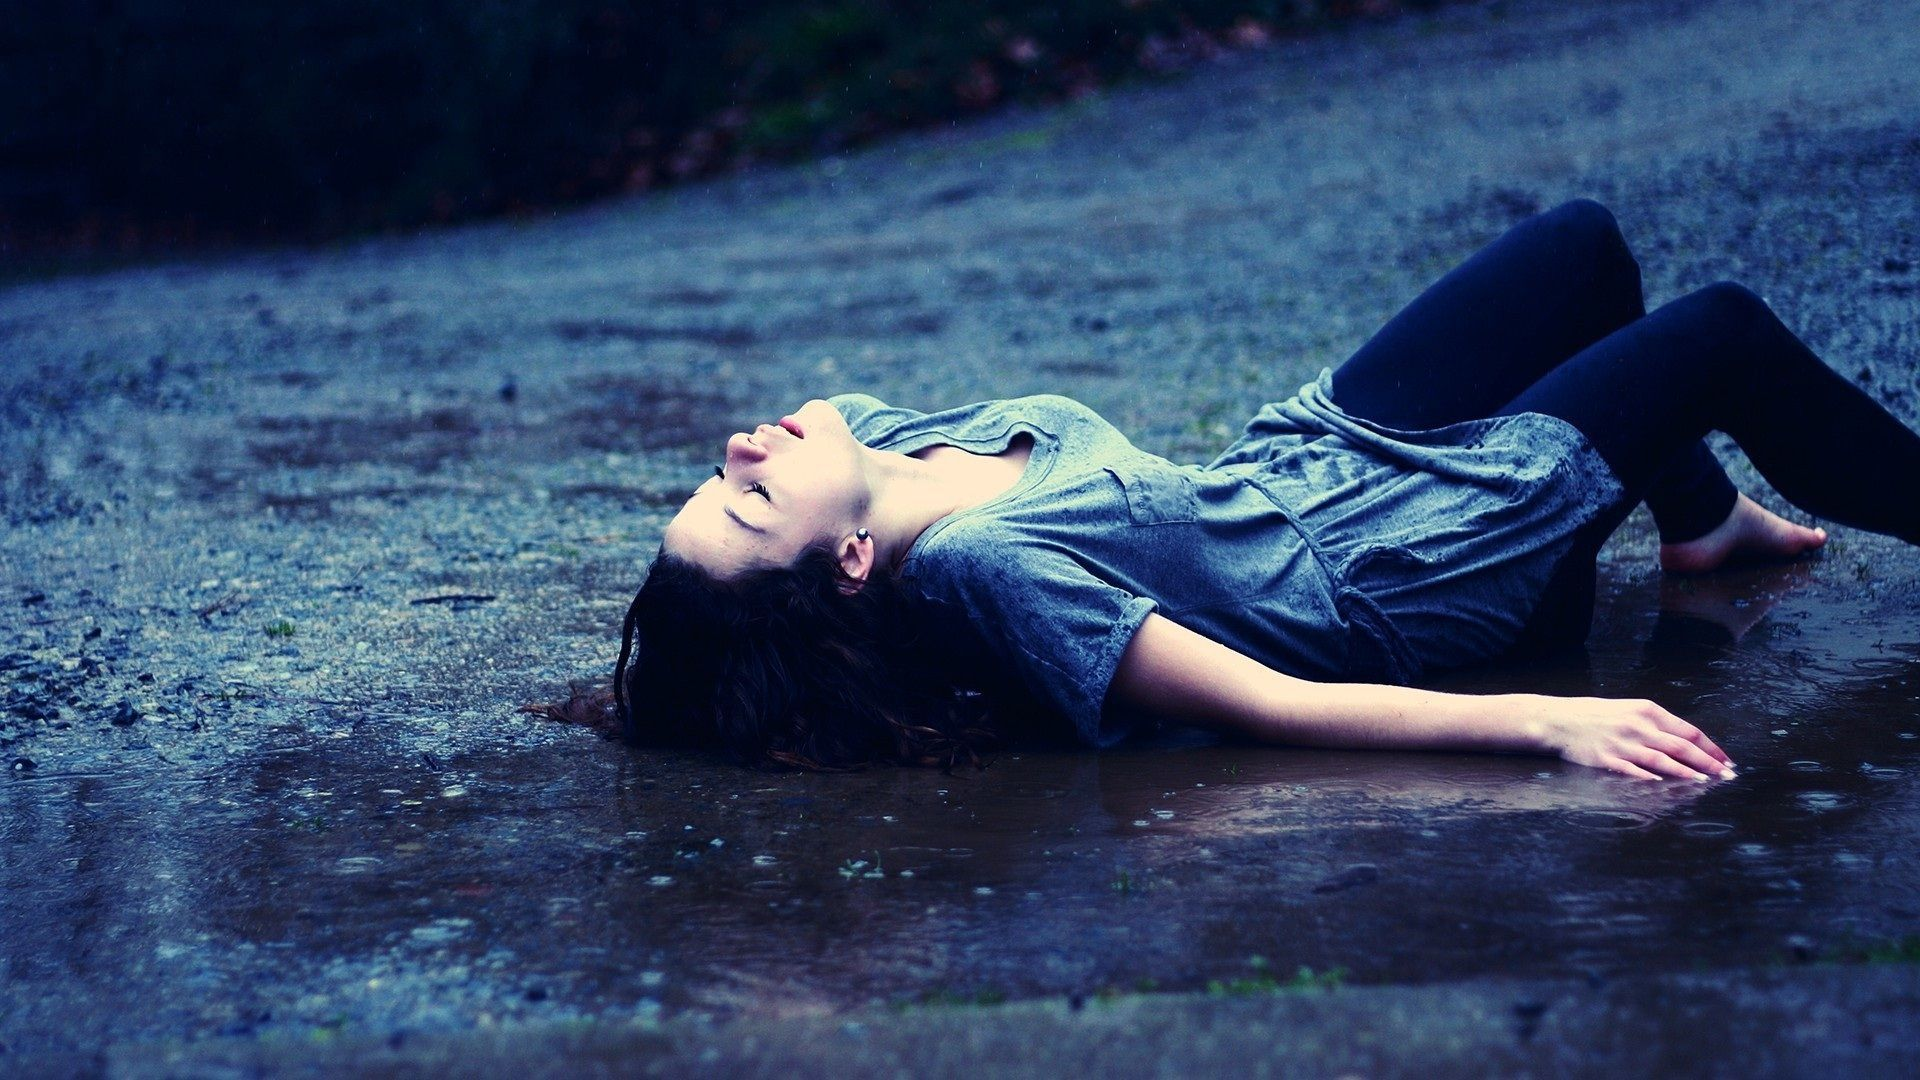 Love Breakup Hd Wallpapers Free Couple Sad Image Pics Girl Under The Rain 234258 Hd Wallpaper Backgrounds Download